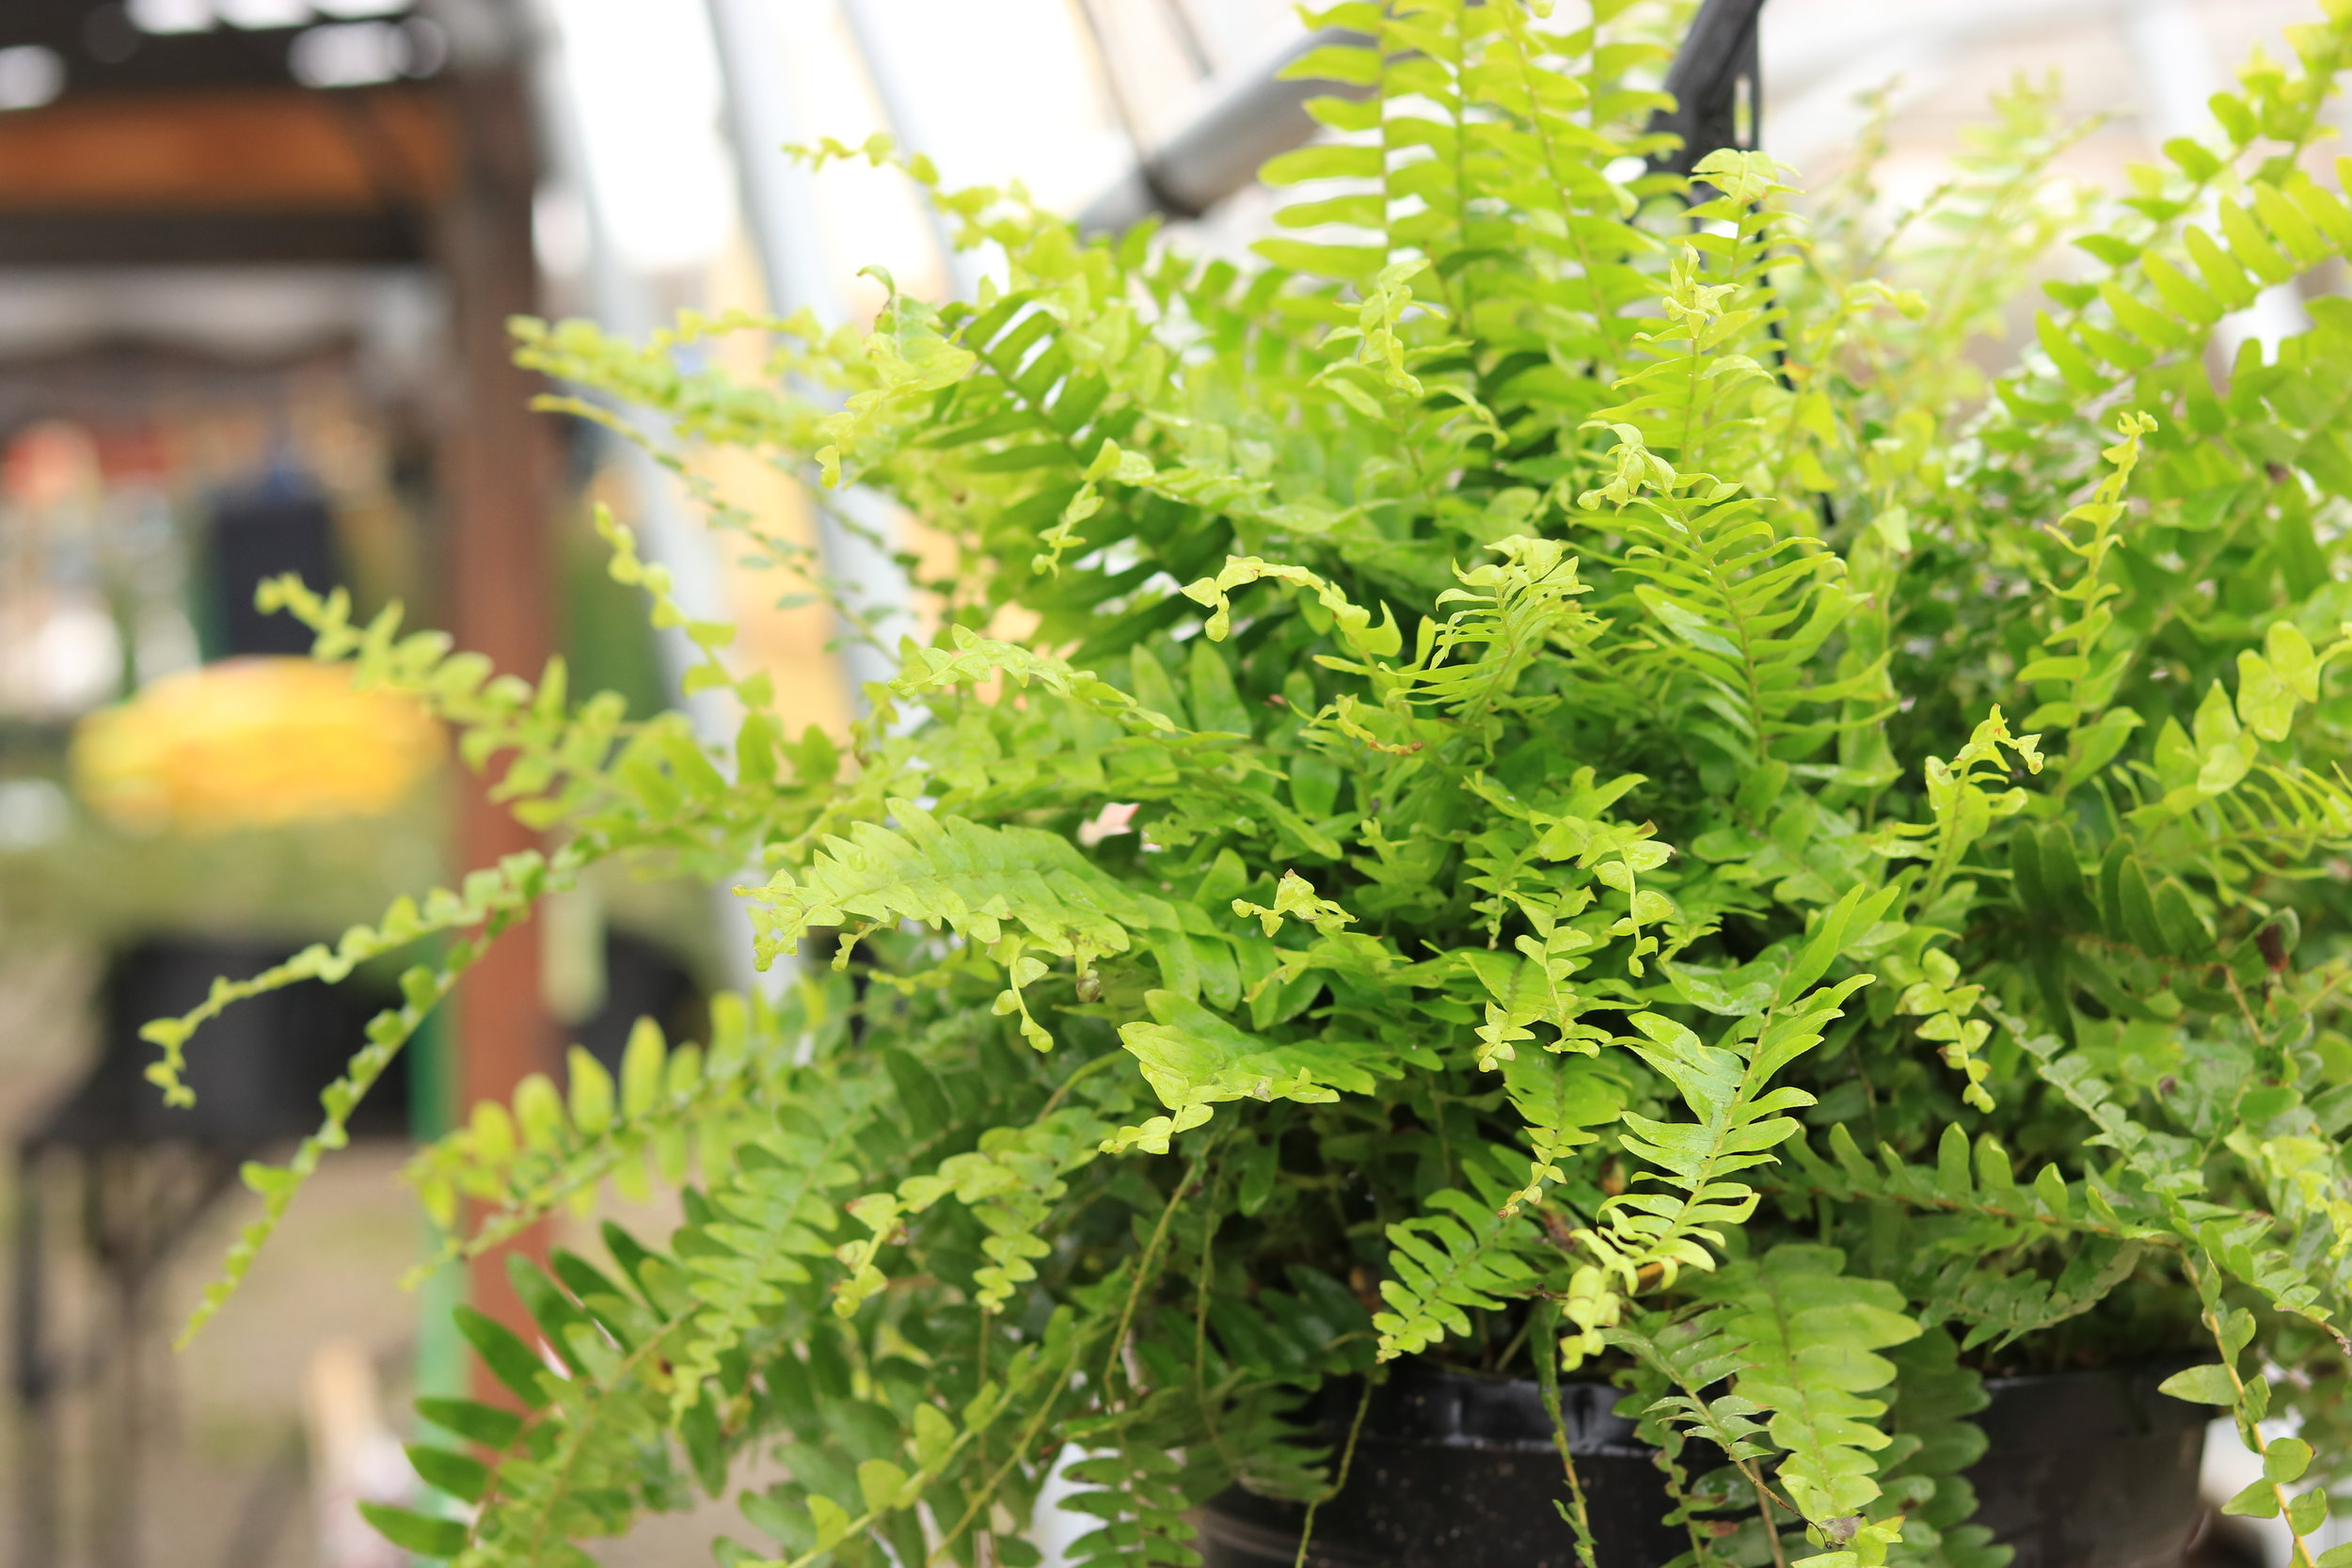 Ferns - Give them an $80 gift card so they can pick out 4 Ferns